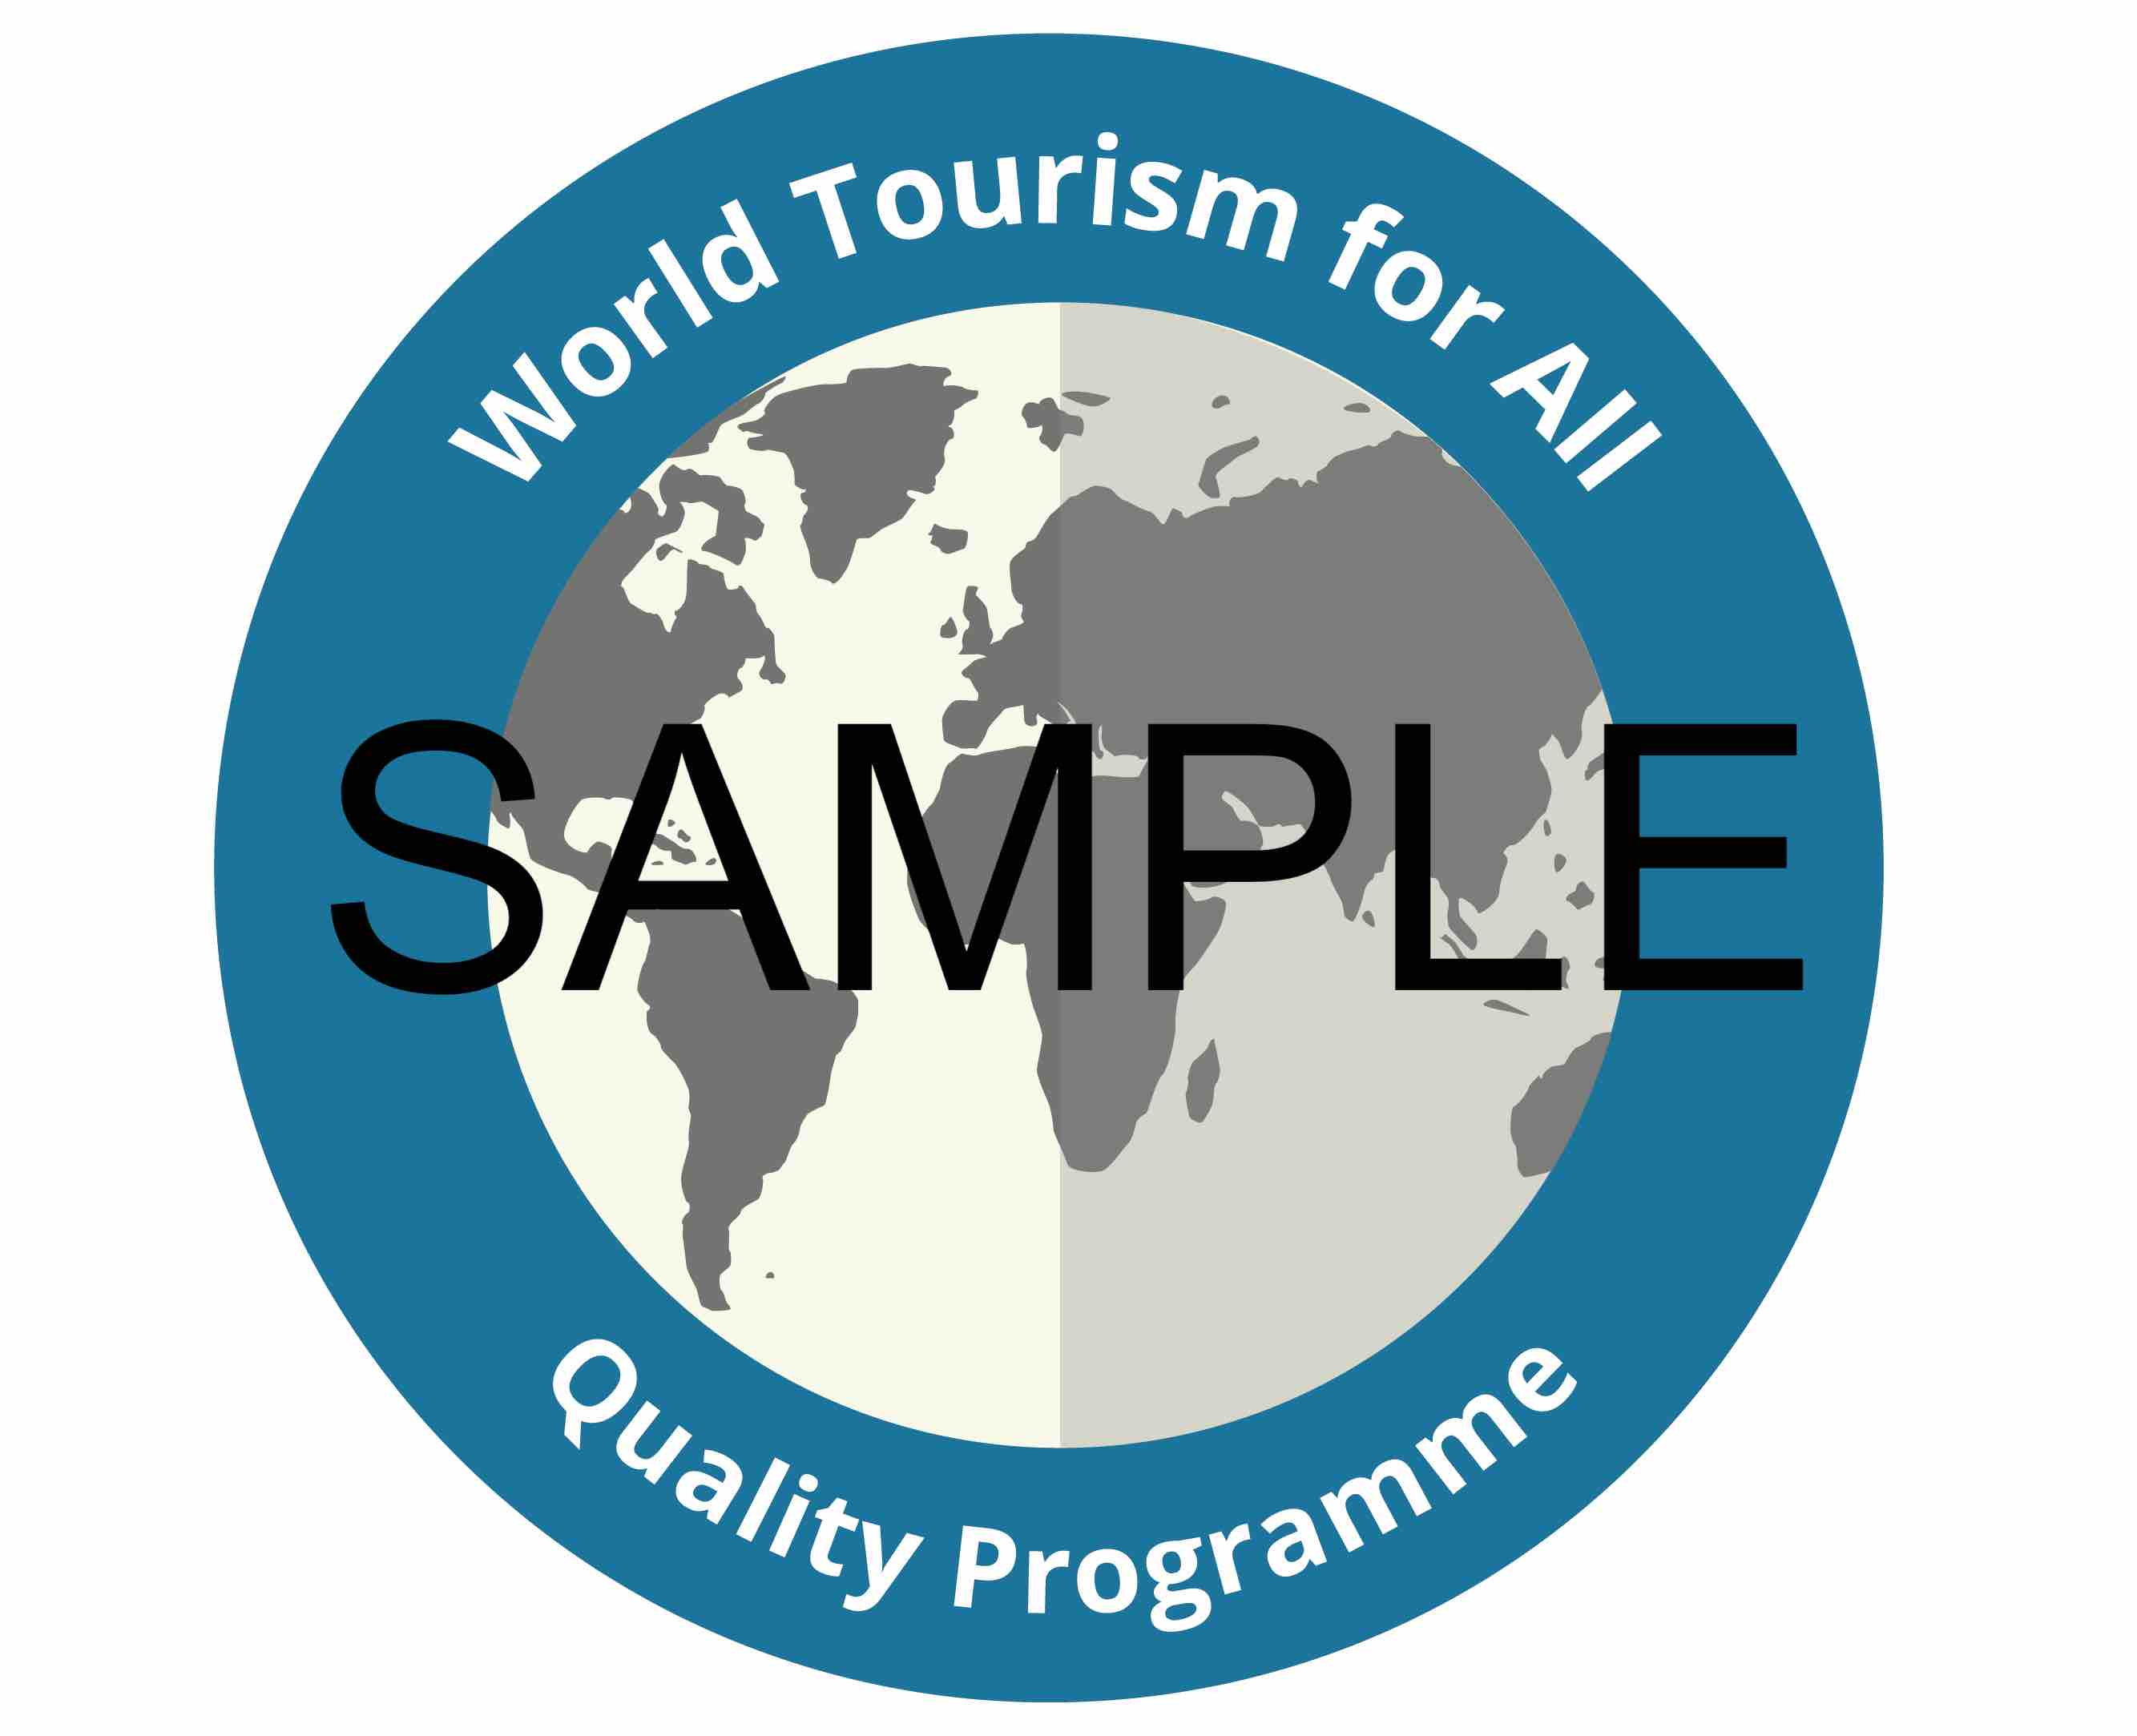 Seal of the World Tourism for All Quality Programme by ENAT